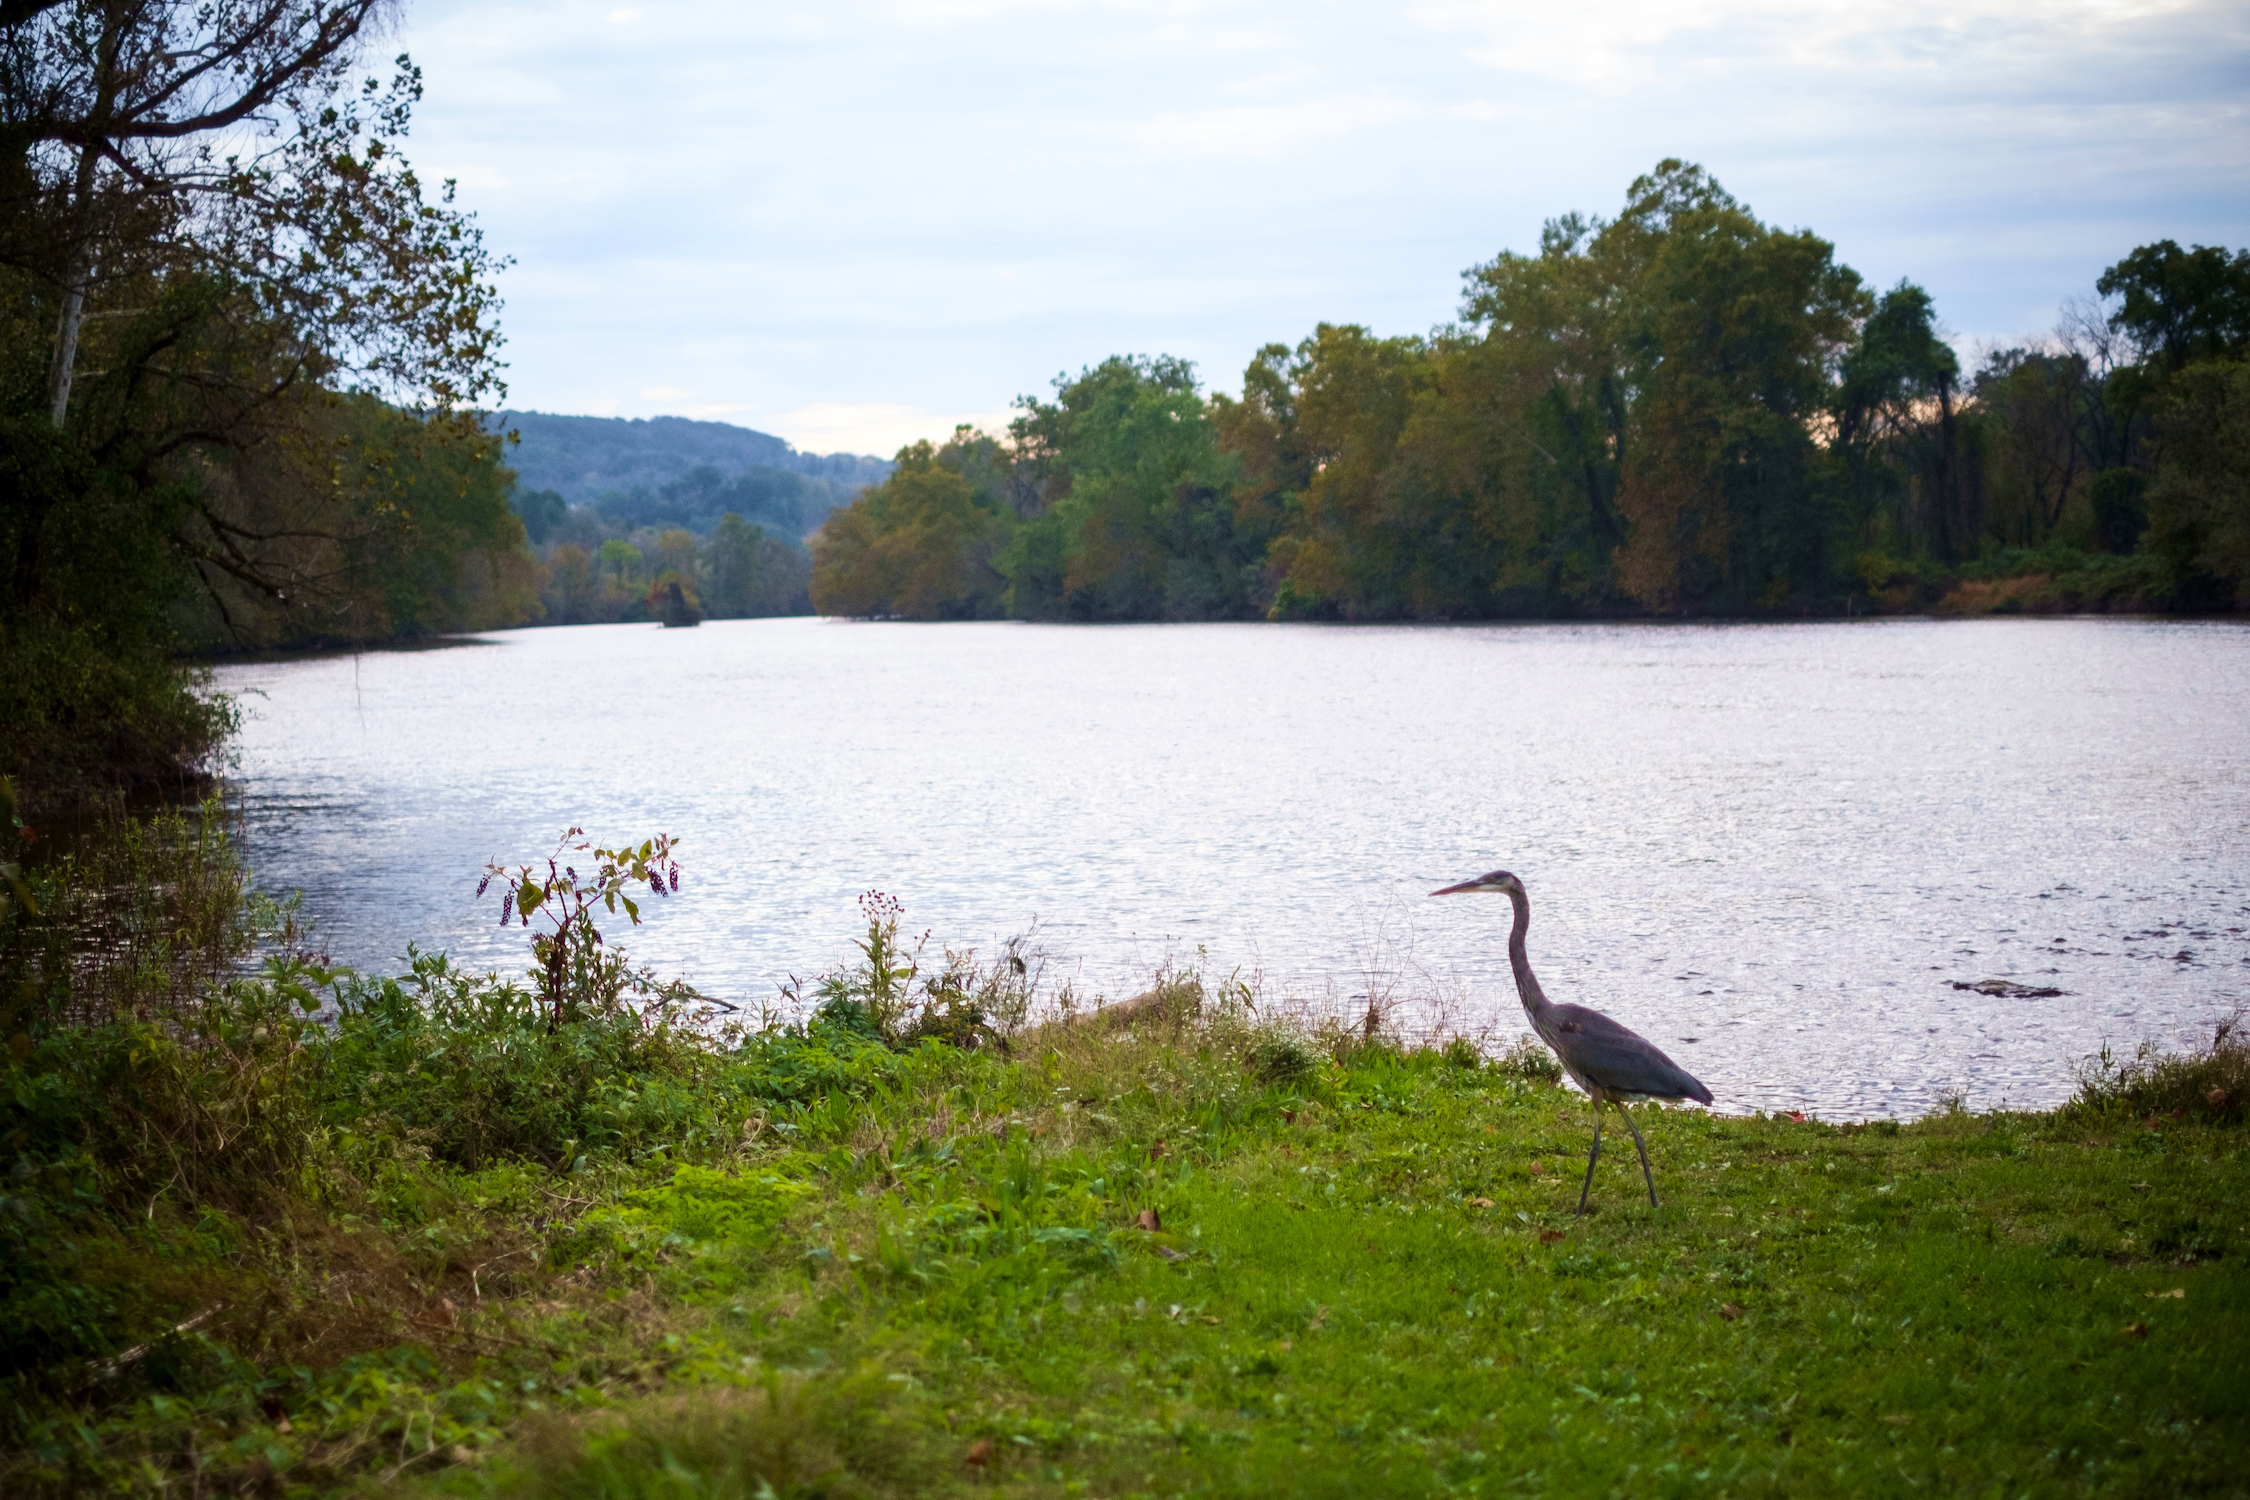 Heron stands by the Lehigh River at Hugh Moore Park